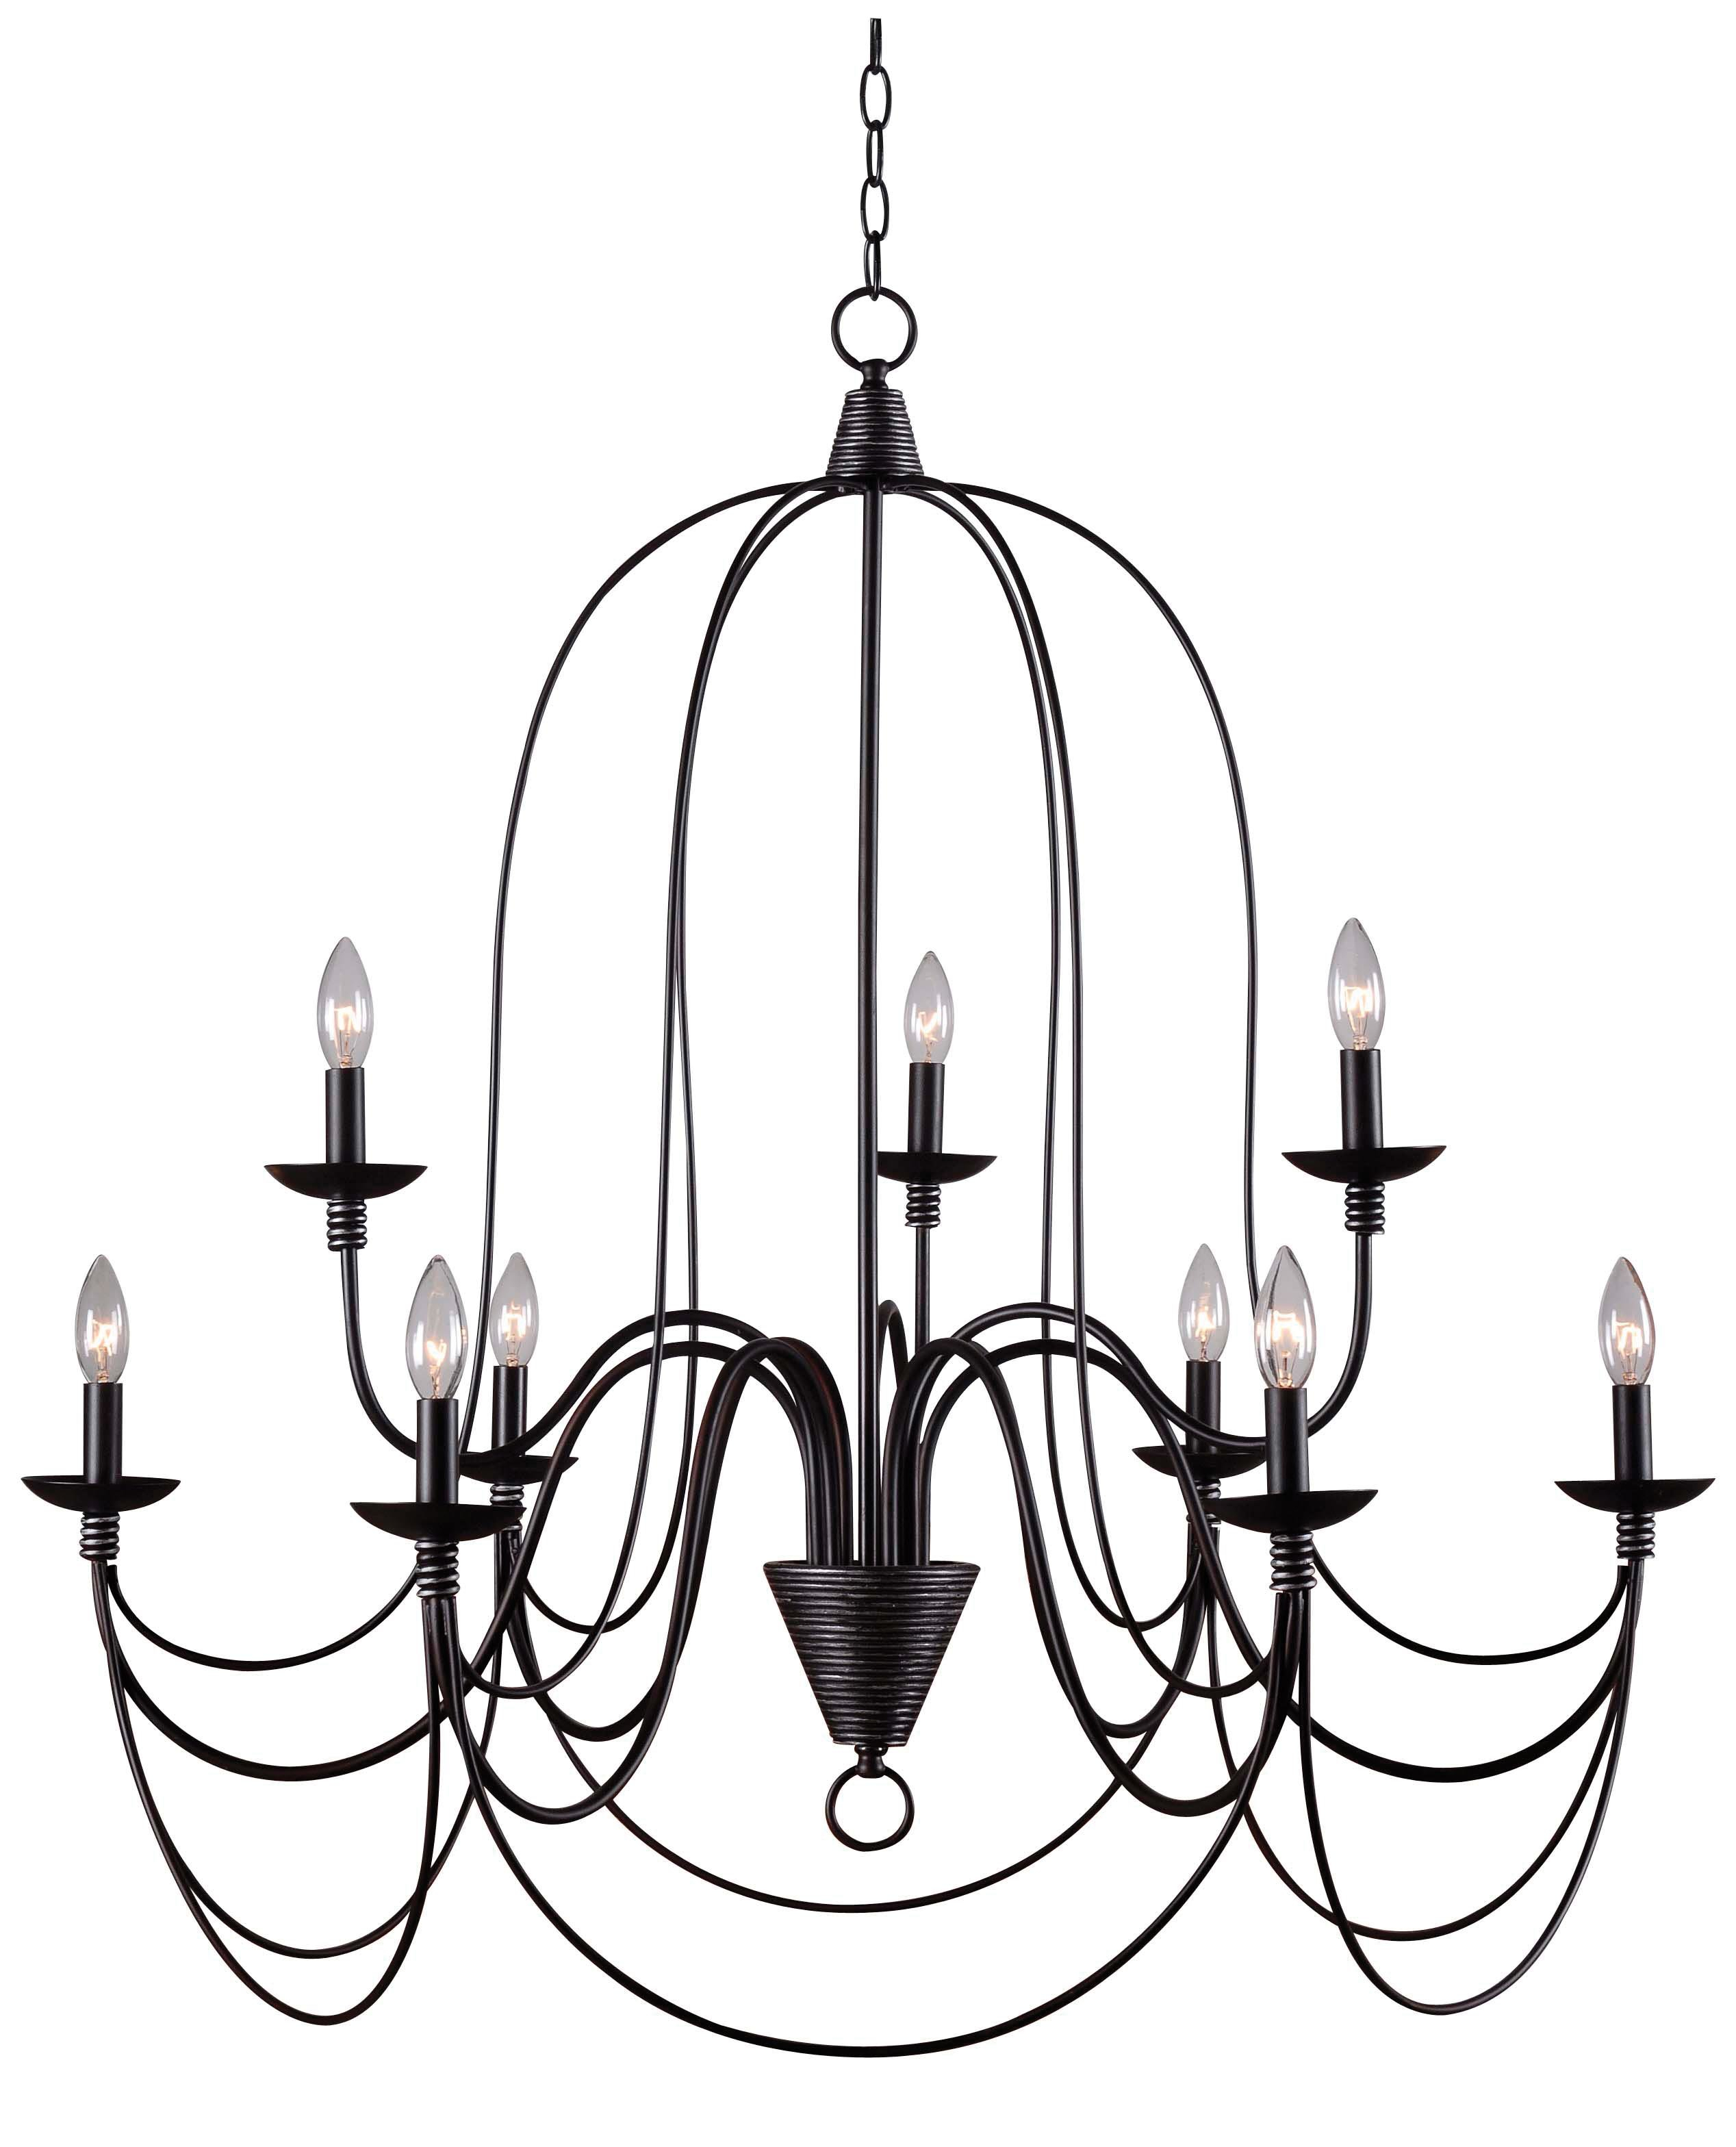 Kollman 9 Light Candle Style Chandelier Pertaining To Gaines 9 Light Candle Style Chandeliers (Photo 7 of 30)